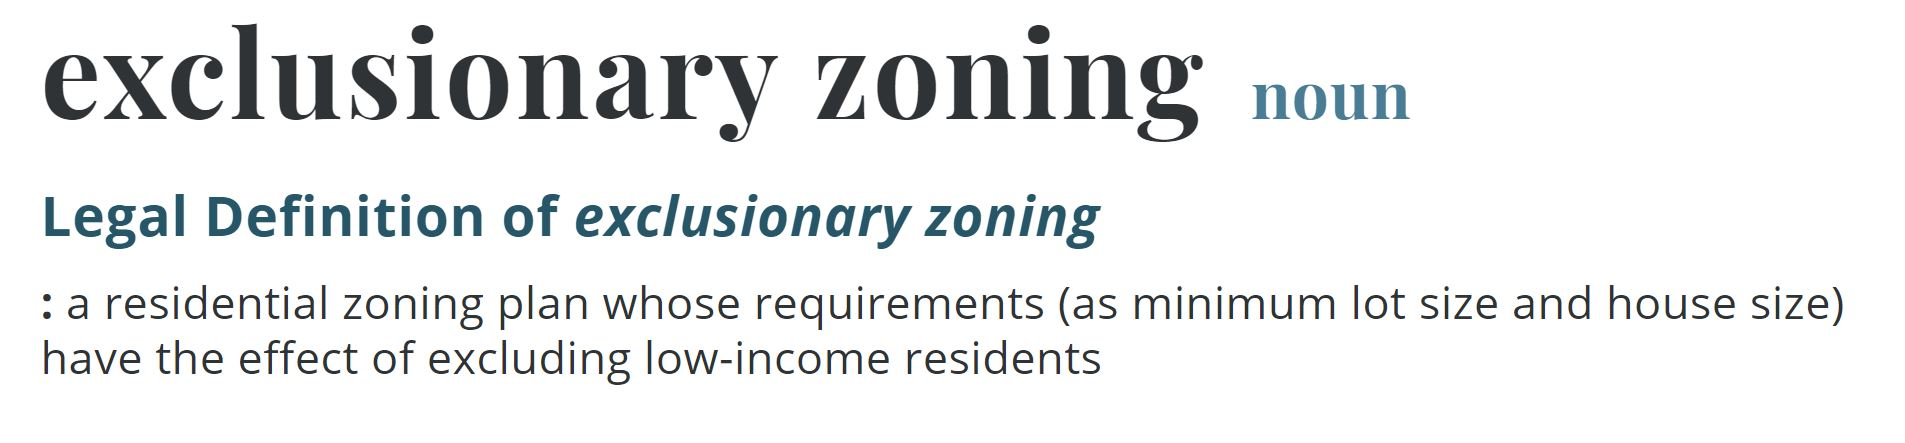 Exclusionary Zoning.JPG